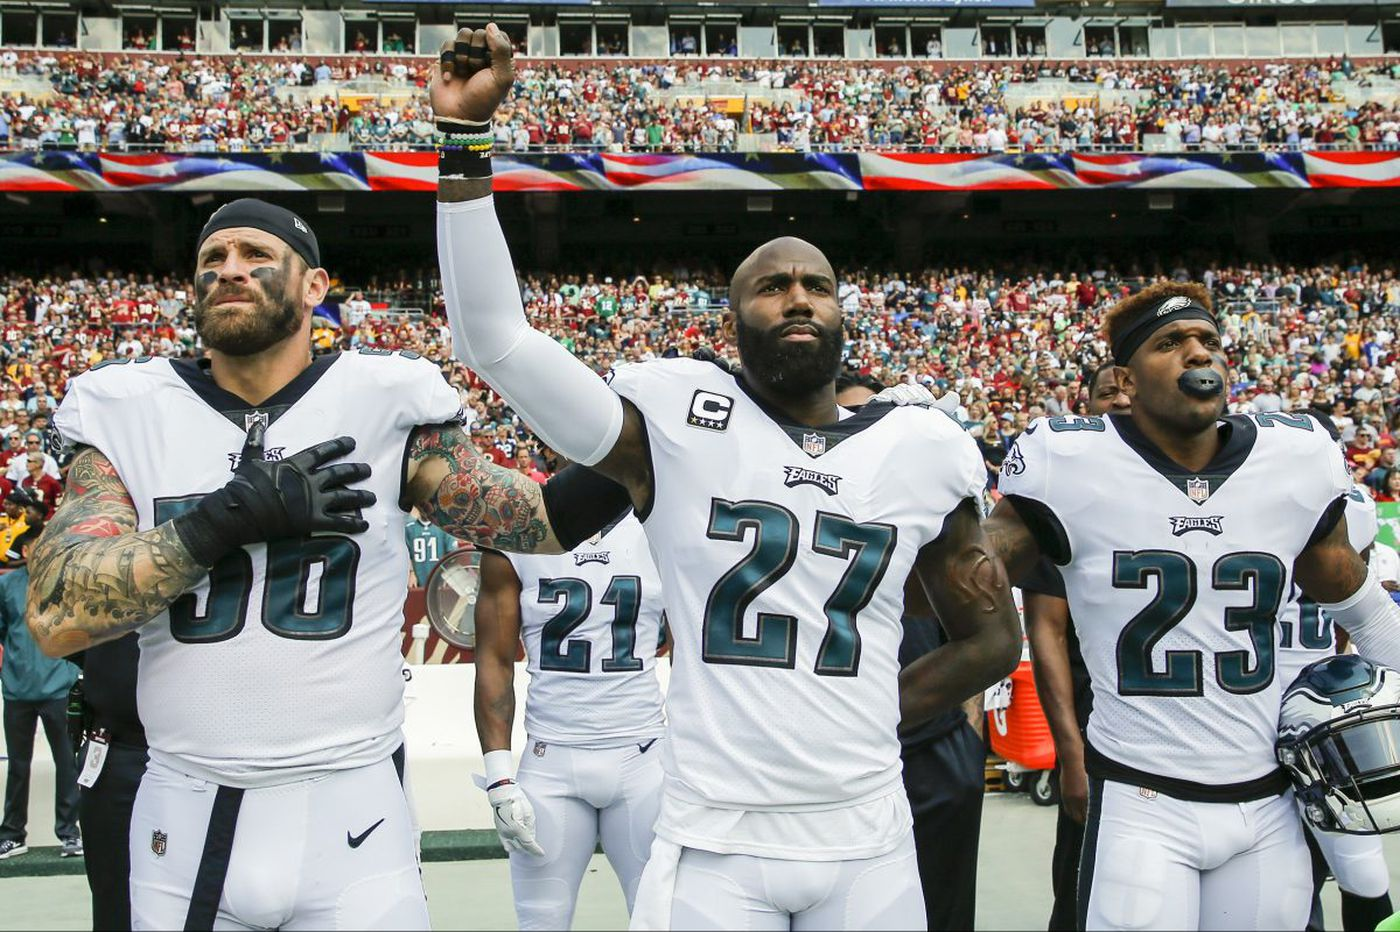 I nearly quit watching the NFL. The humanity of Malcolm Jenkins and Chris Long brought me back | Will Bunch